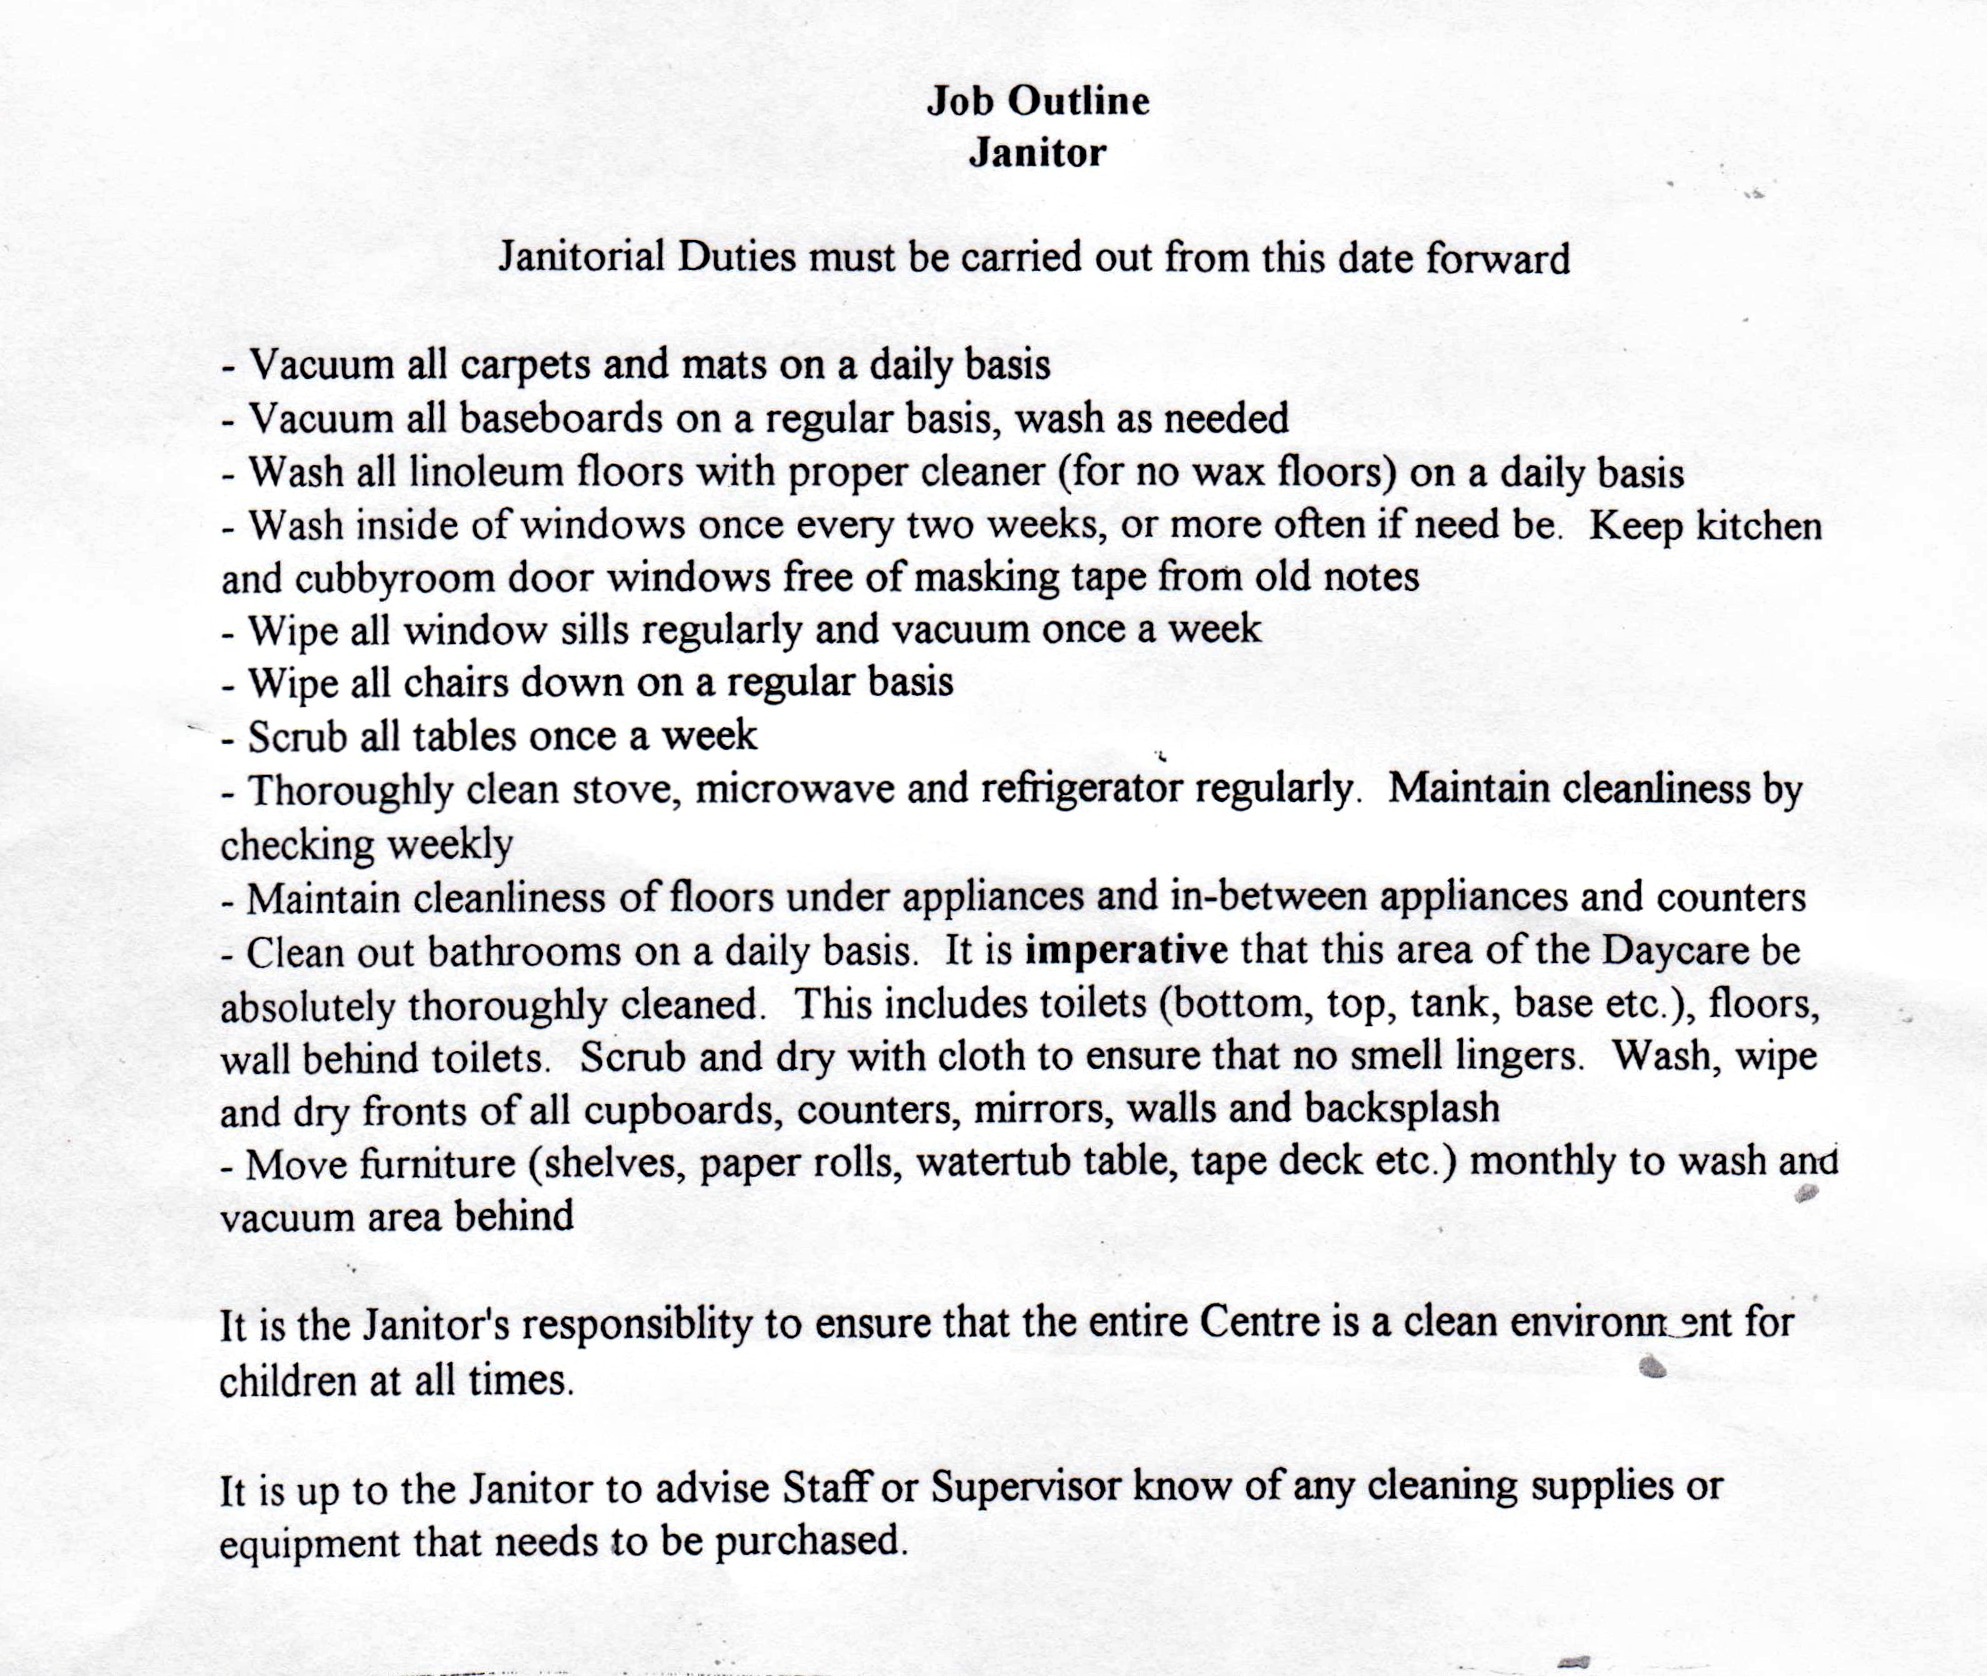 janitorial description resumes - Roberto.mattni.co